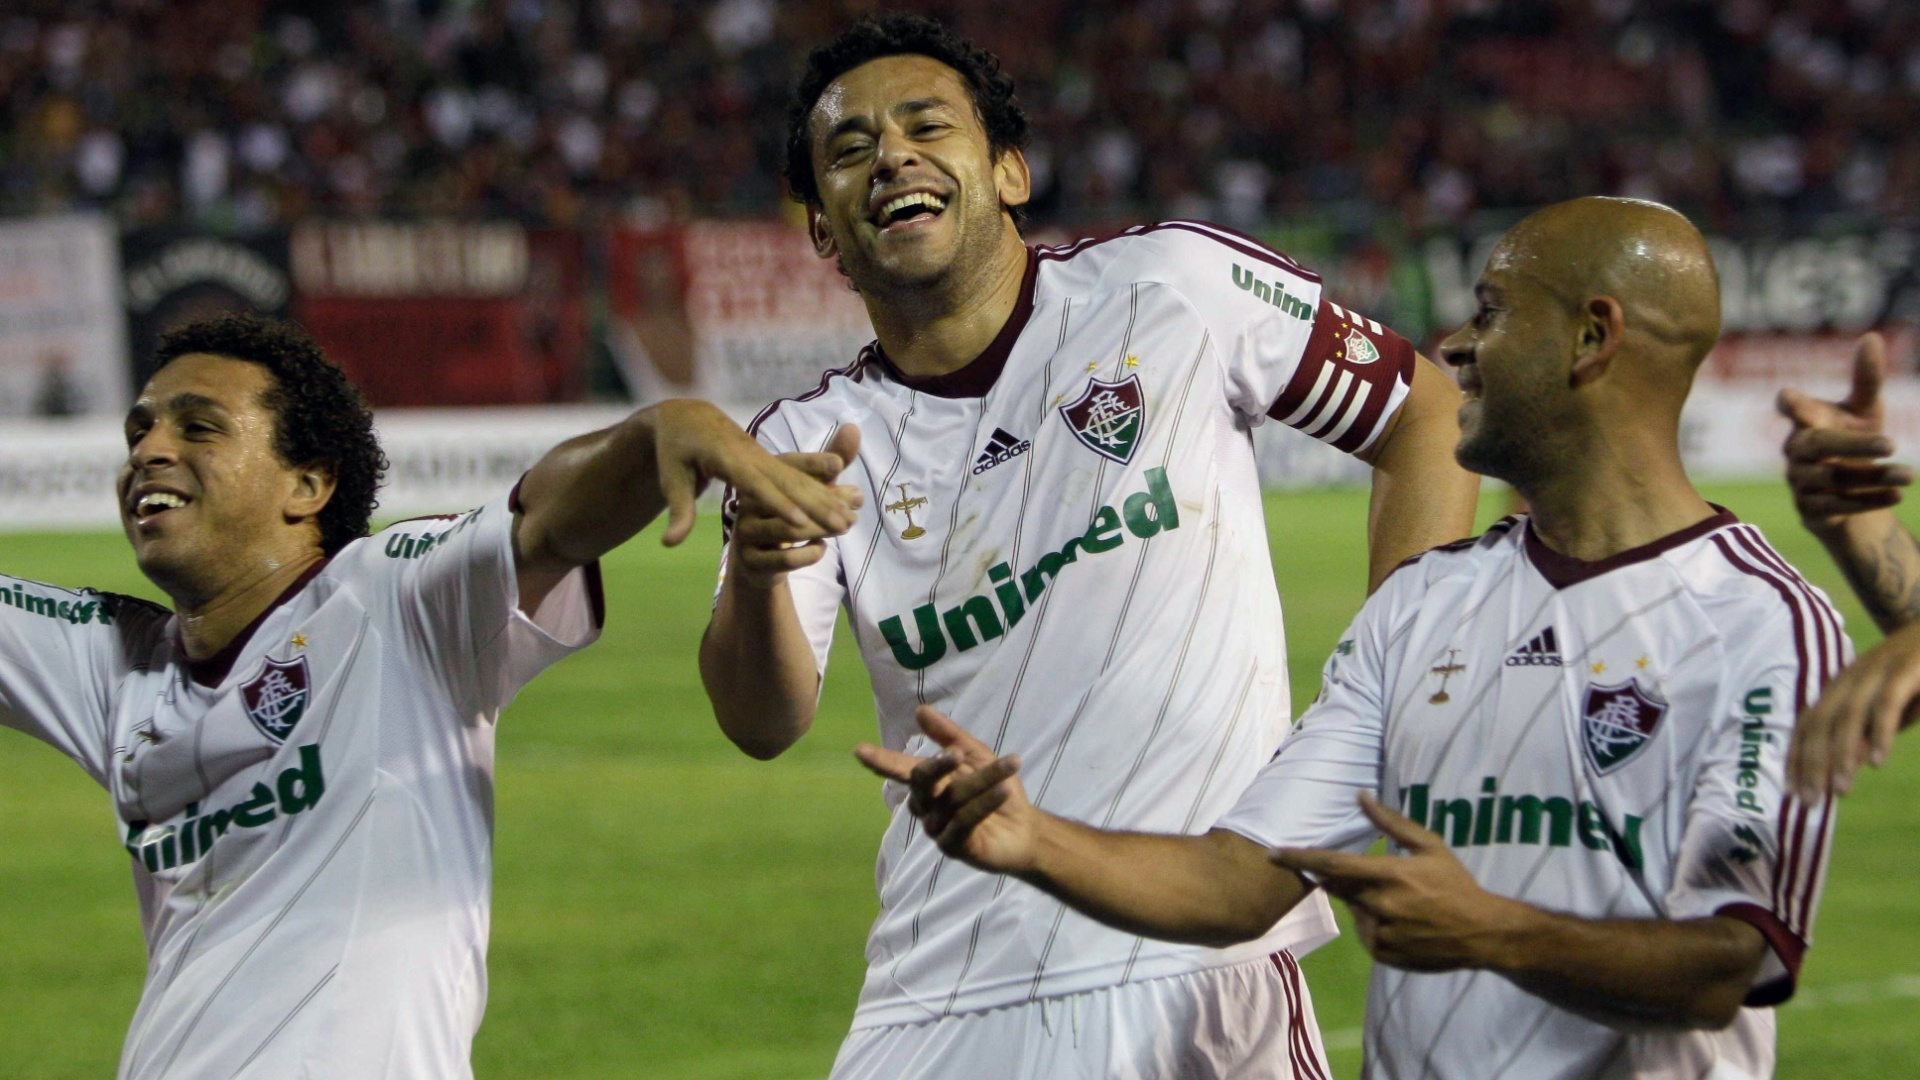 13.fev.2013 - Jogadores do Fluminense comemoram o gol marcado por Fred contra o Caracas